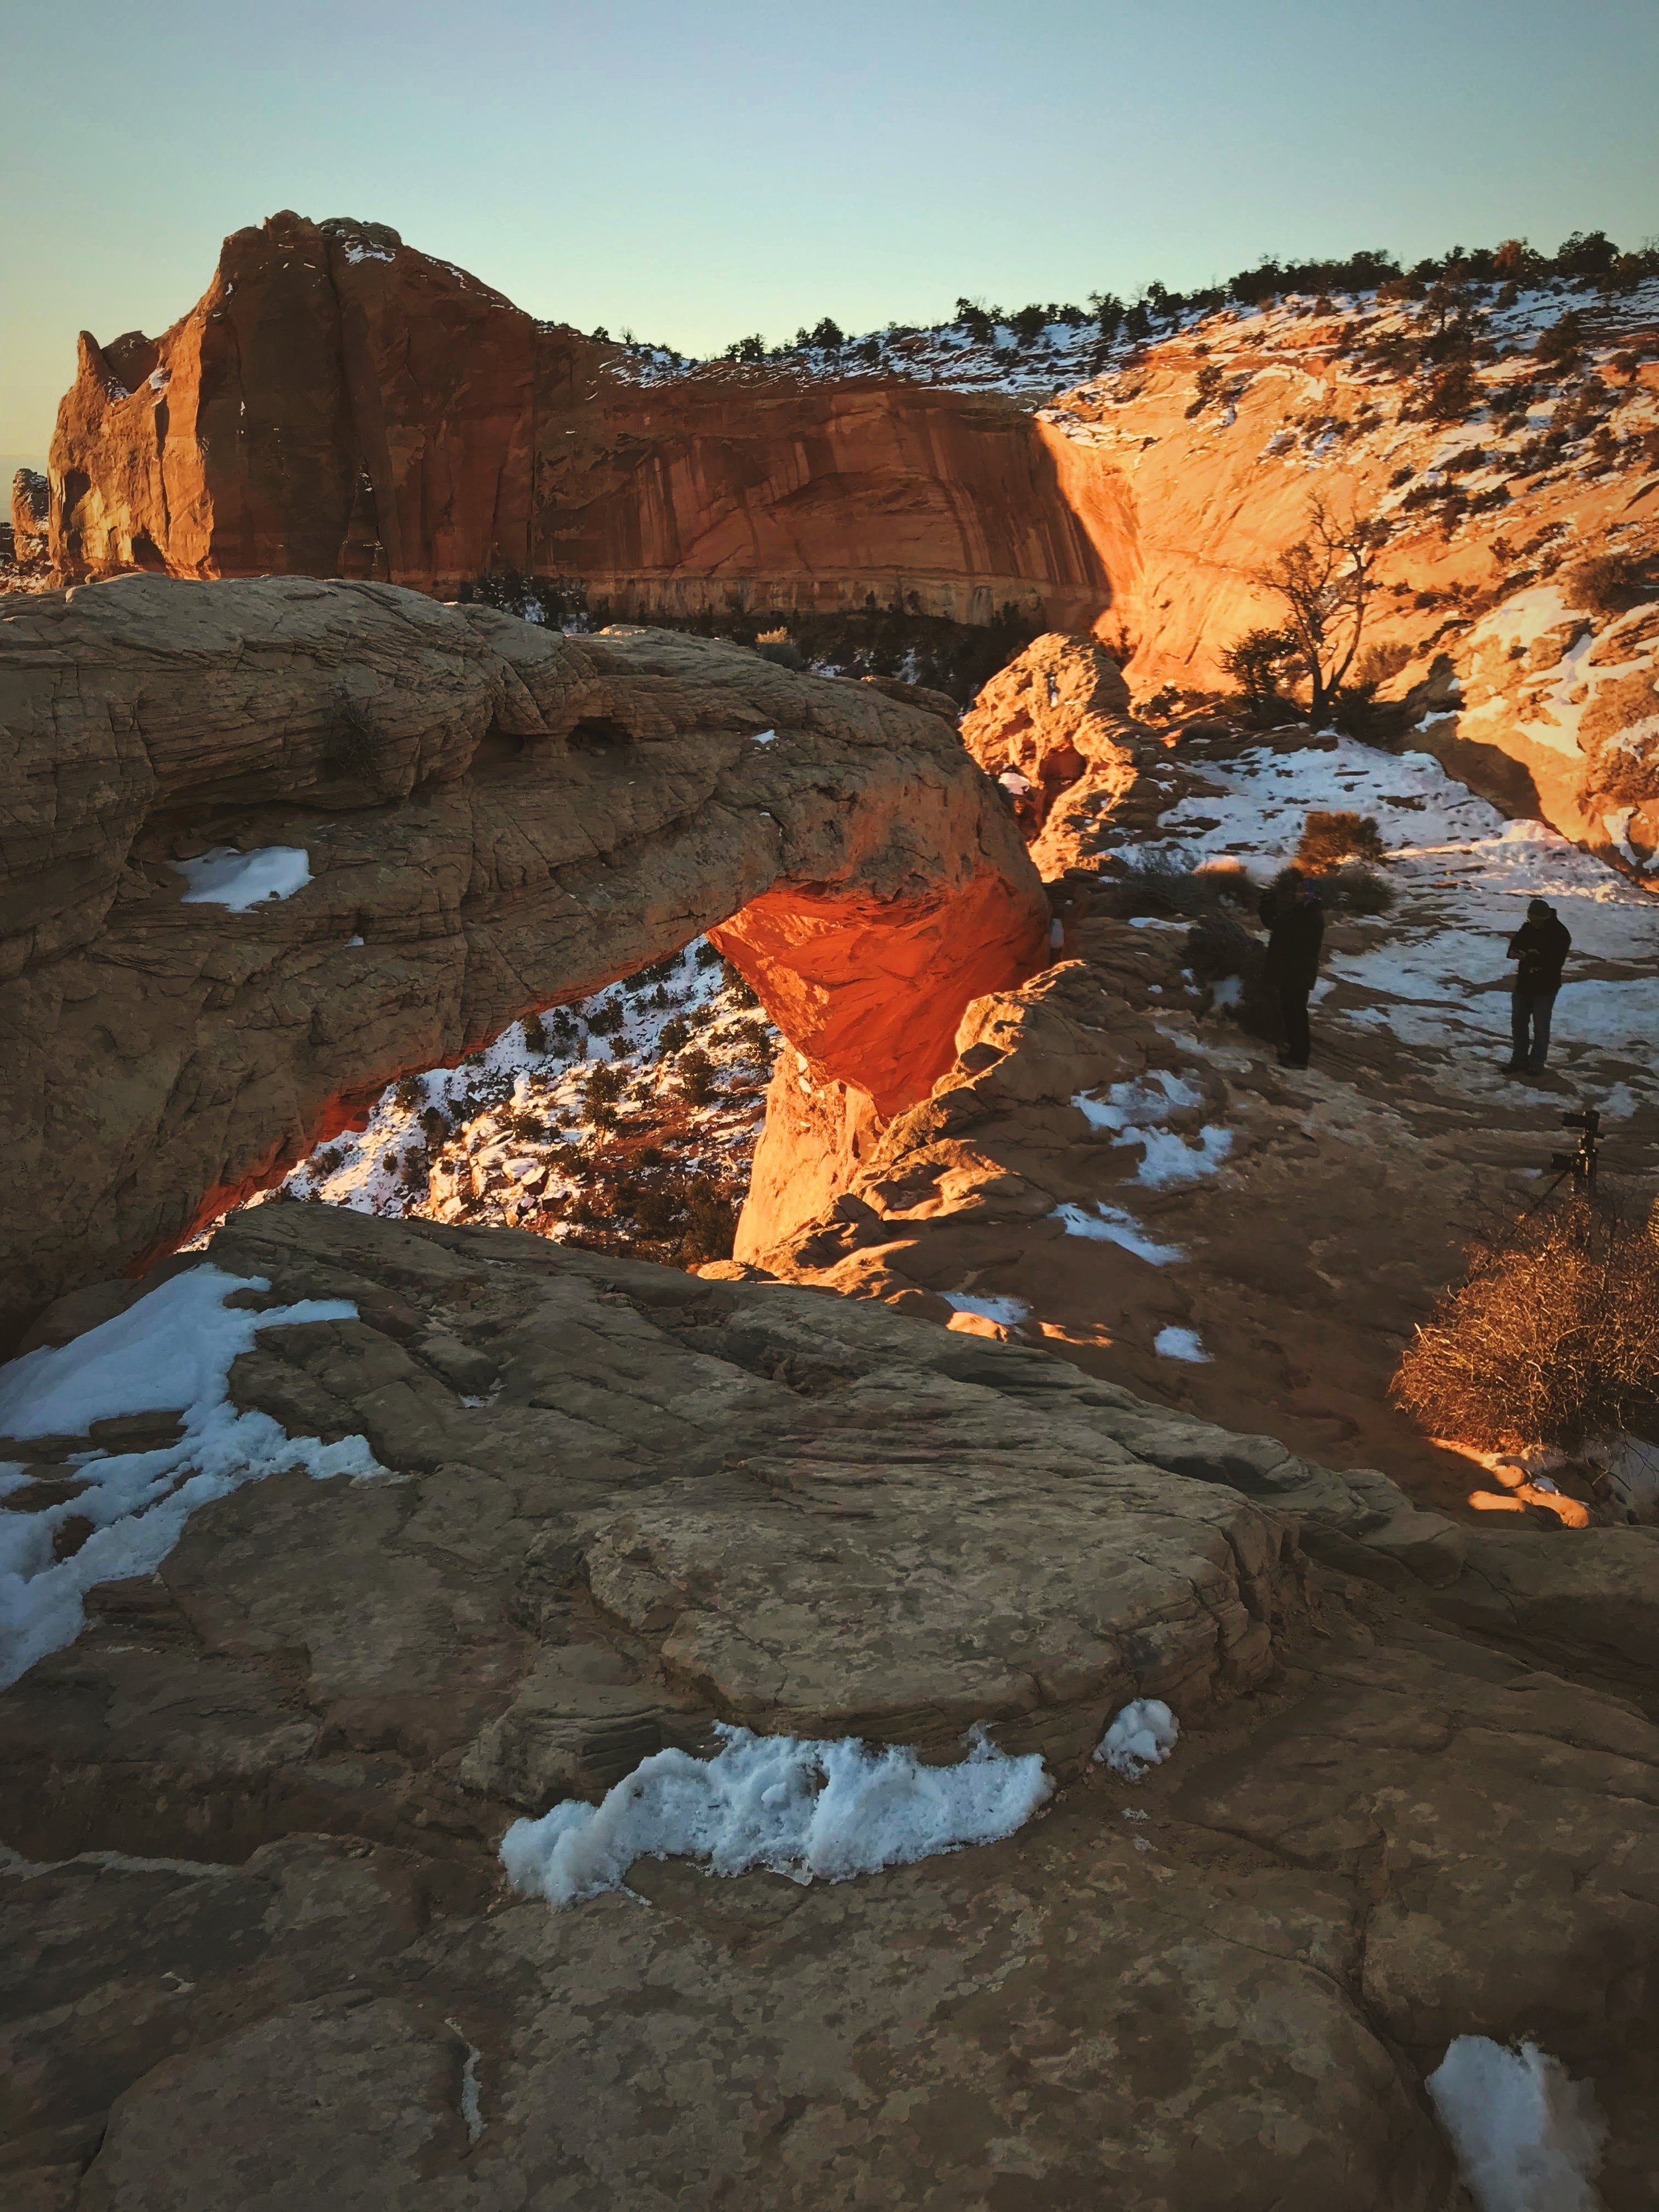 In summer there's sometimes 50 people trying to photograph the sunrise at Mesa Arch. Winter is a different story.